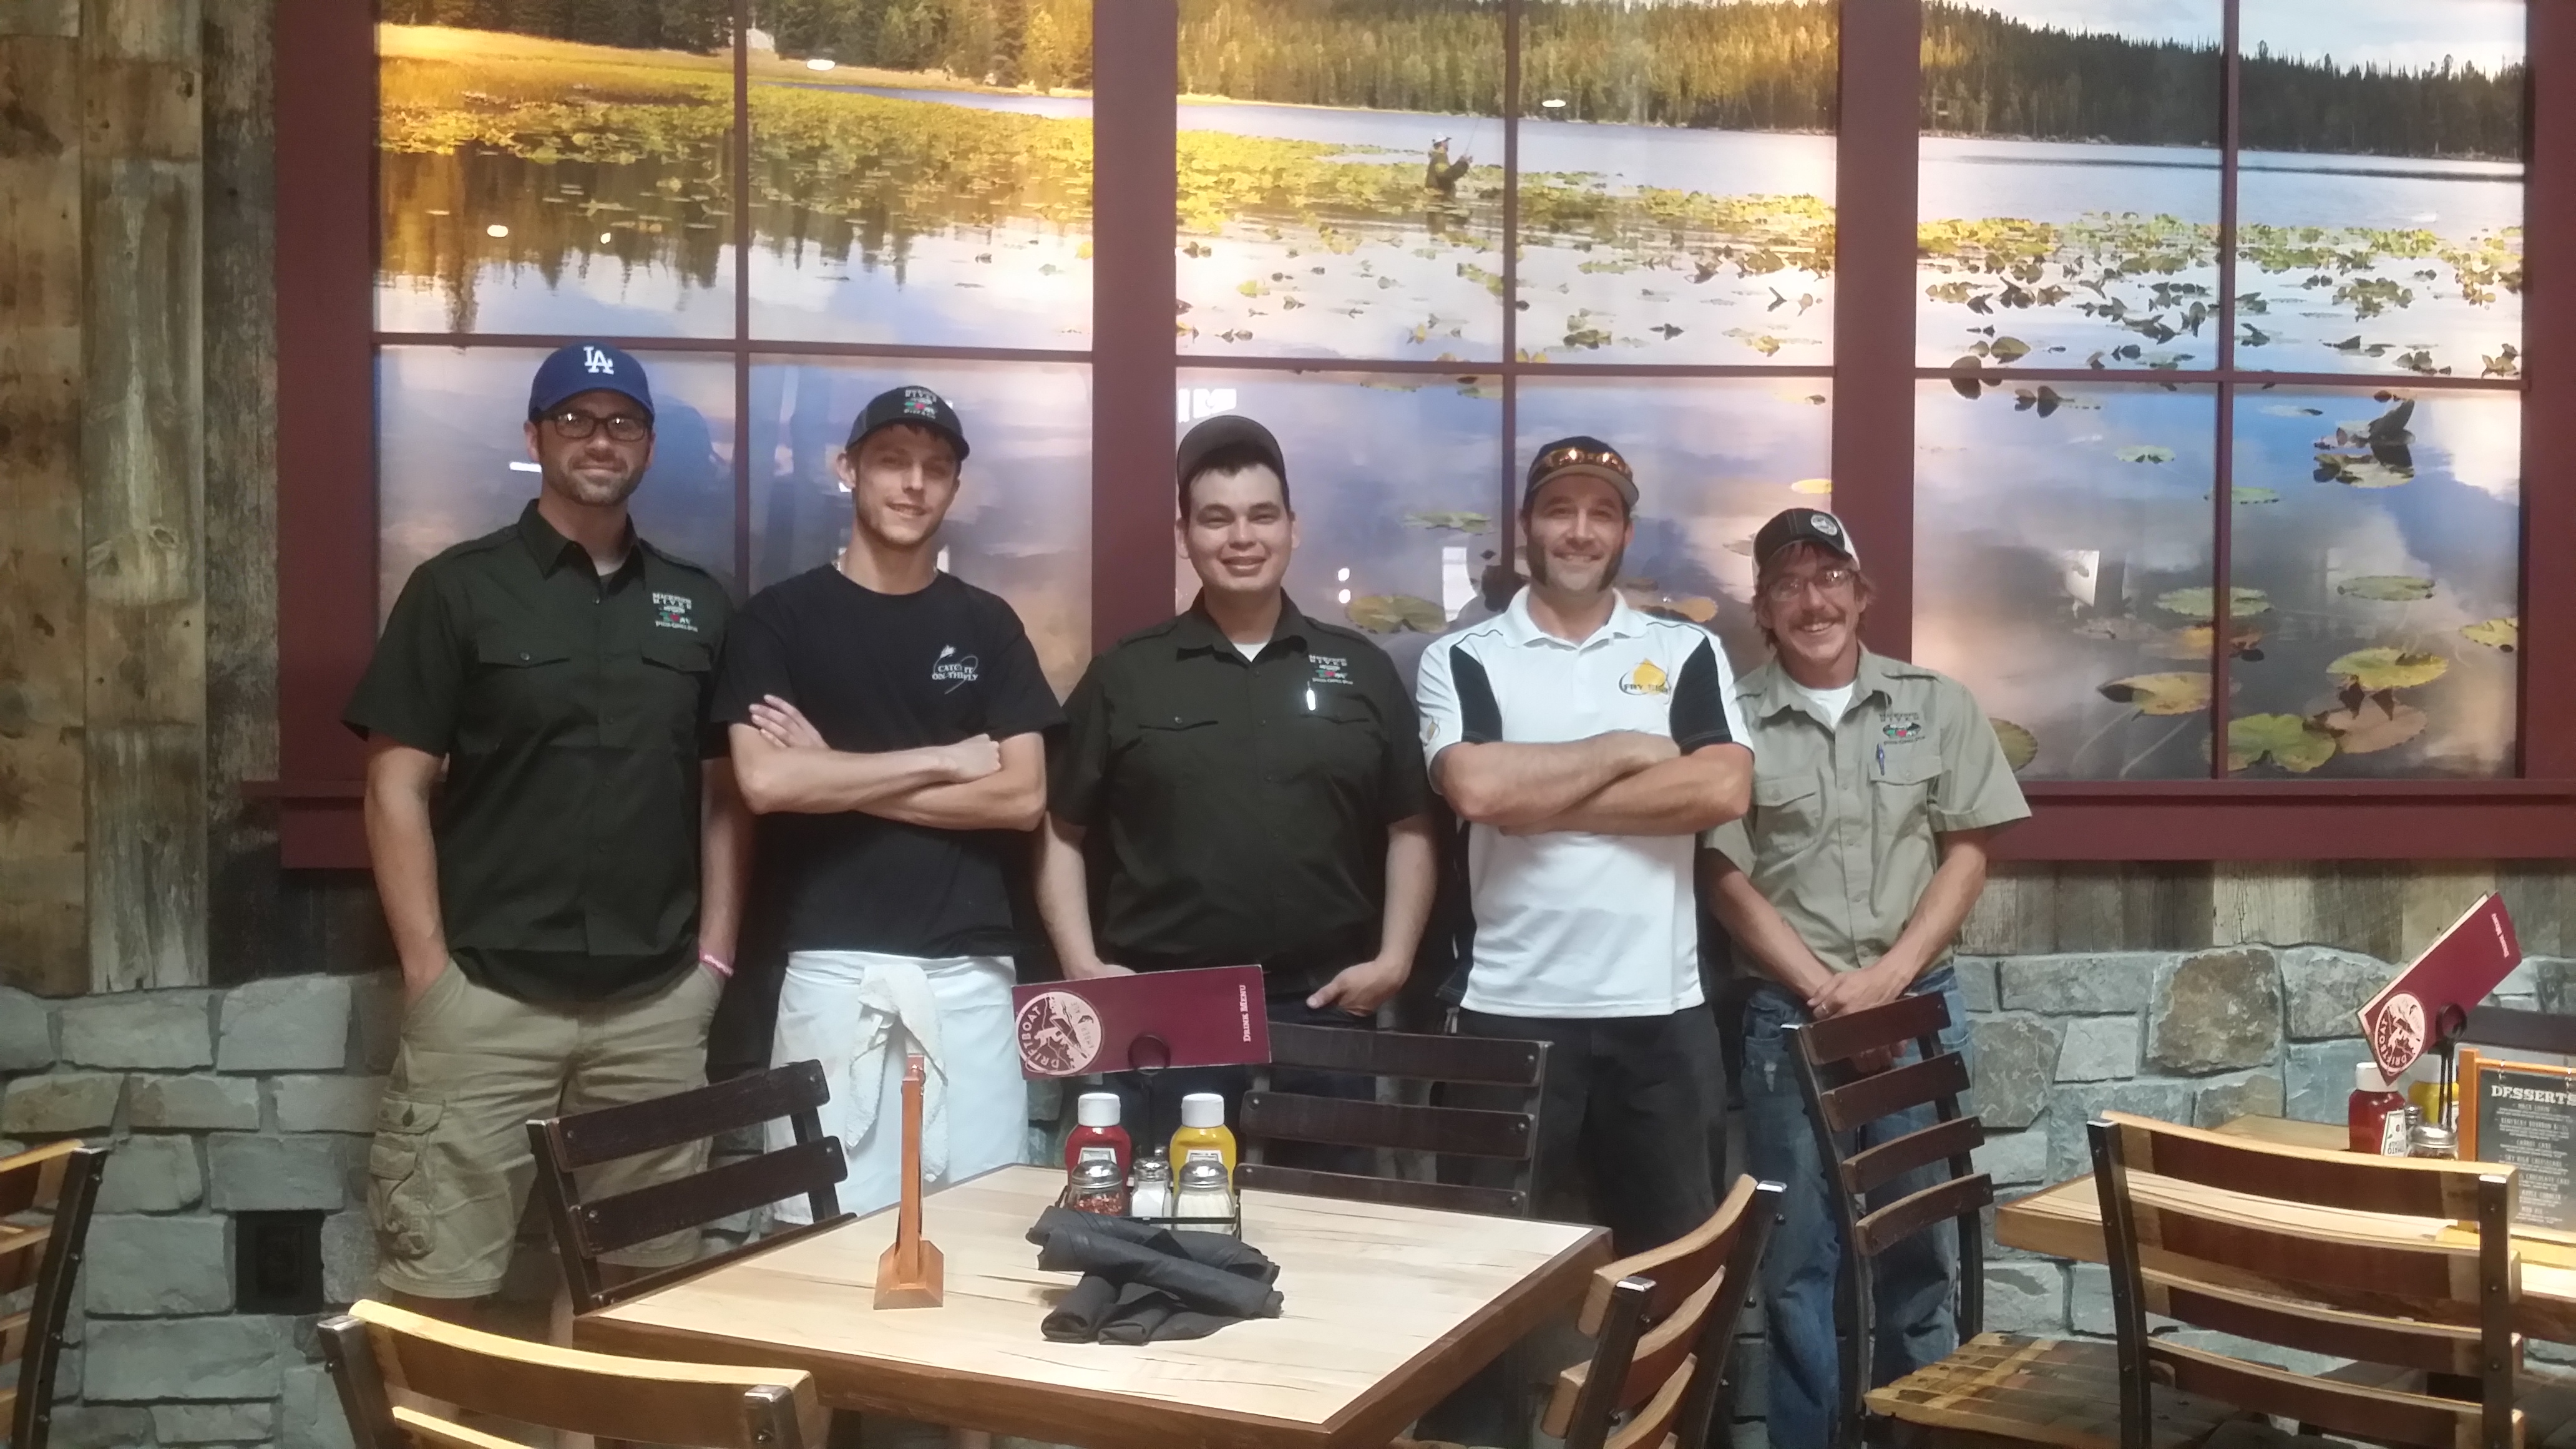 Fry Right and Mackenzie River Management